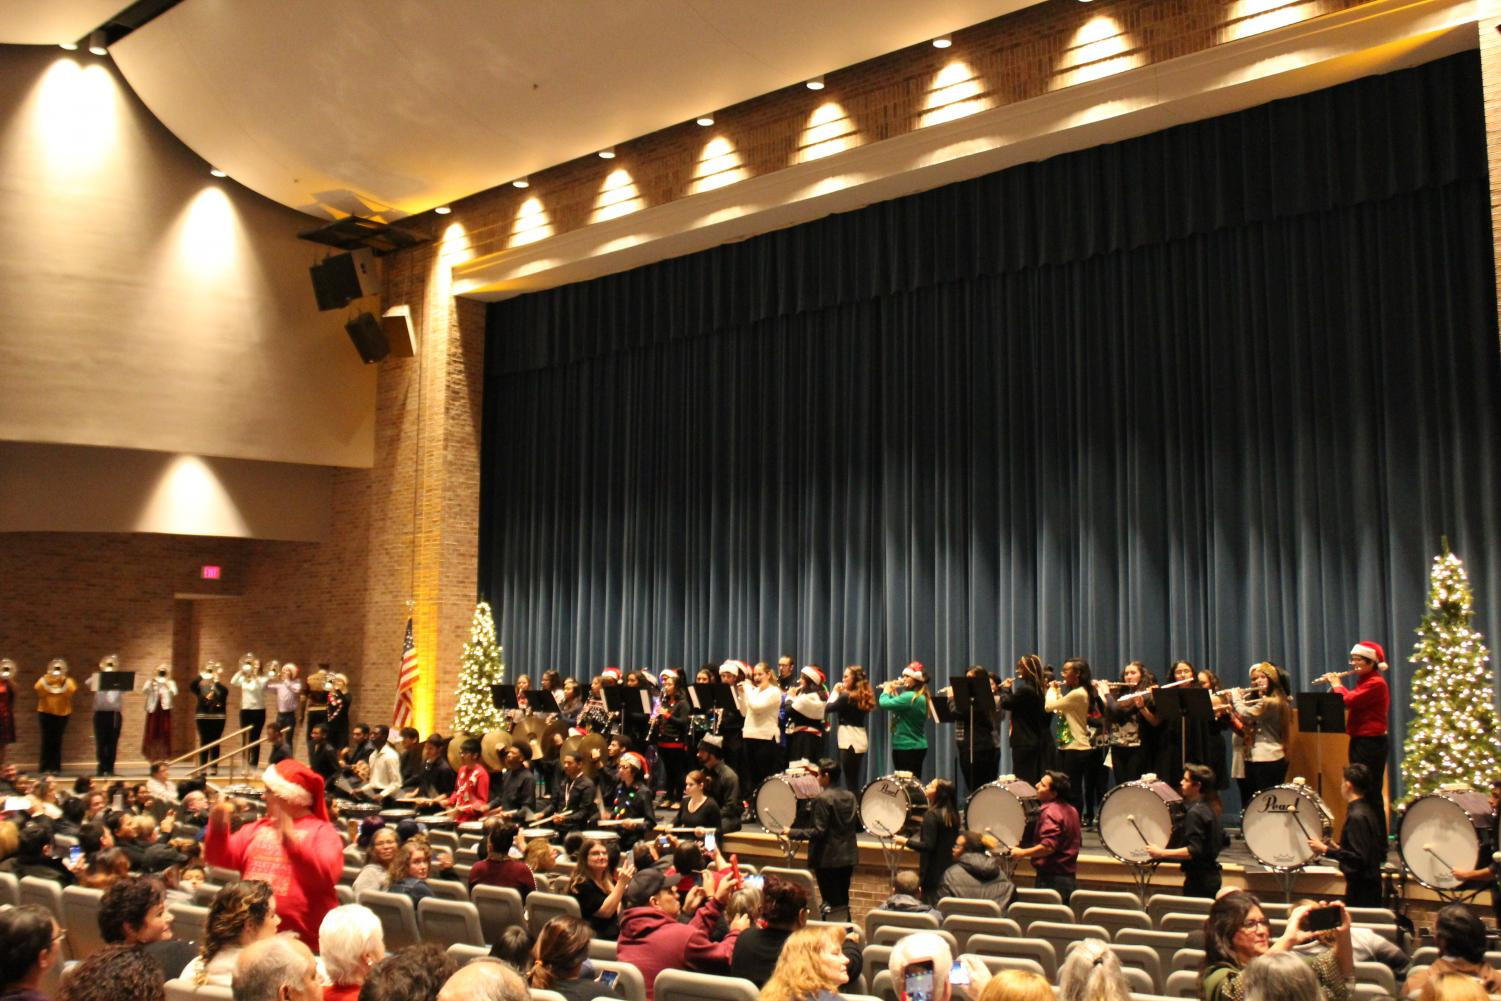 The whole band performs and grand finale at the concert with all the bands playing together. The grand finale was one of the last moments the band would play altogether this year.